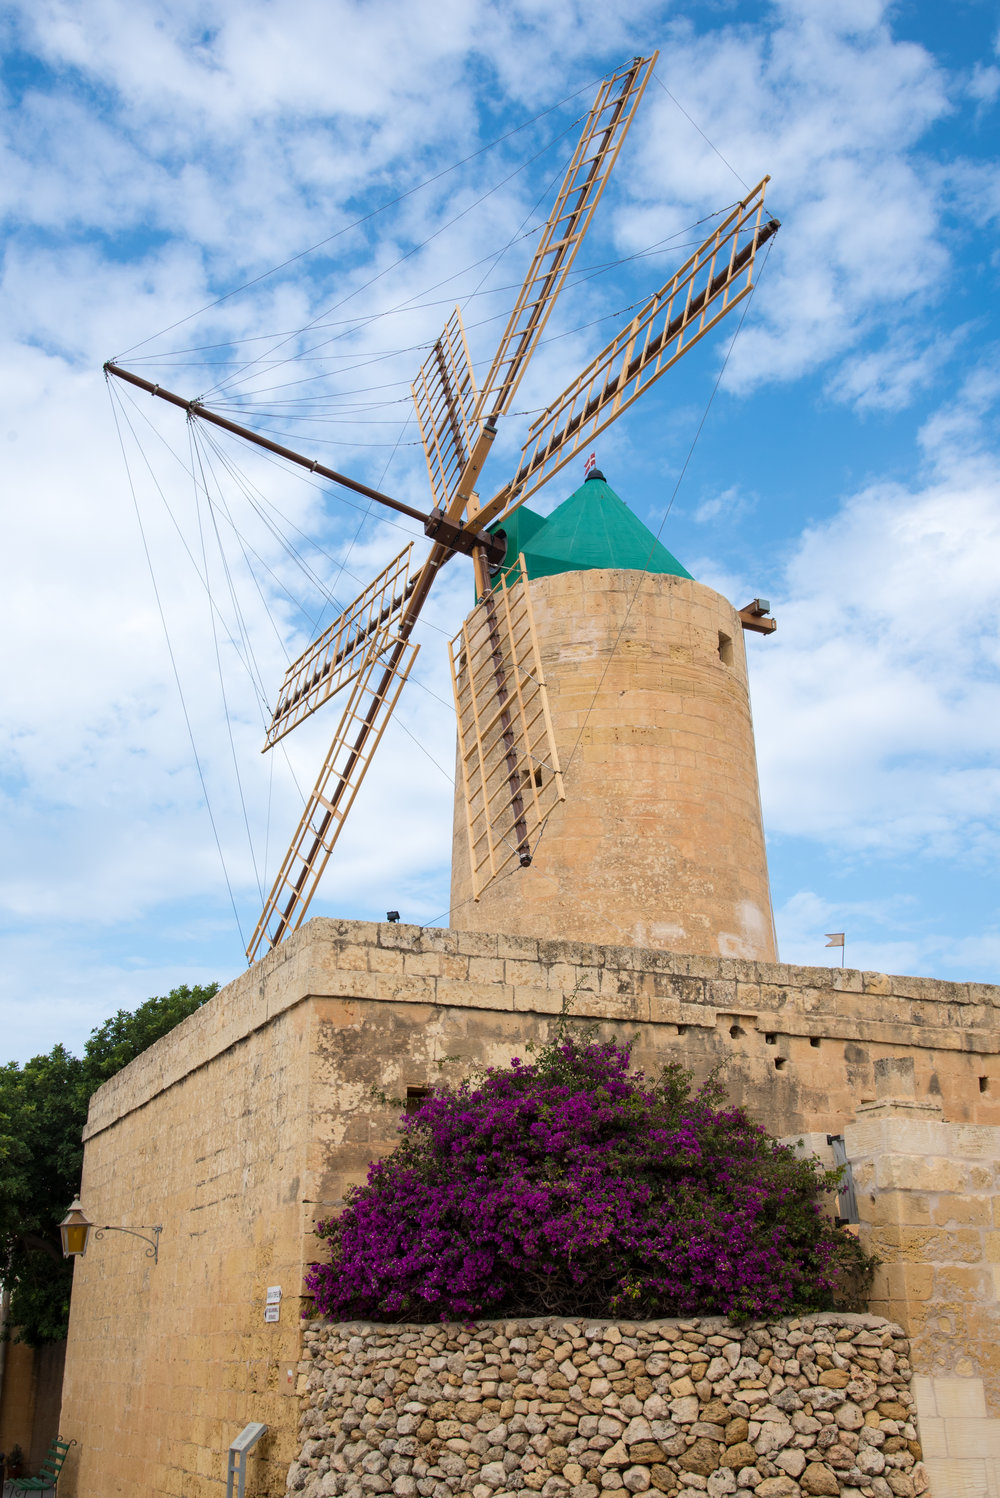 The Ta' Kola Windmill